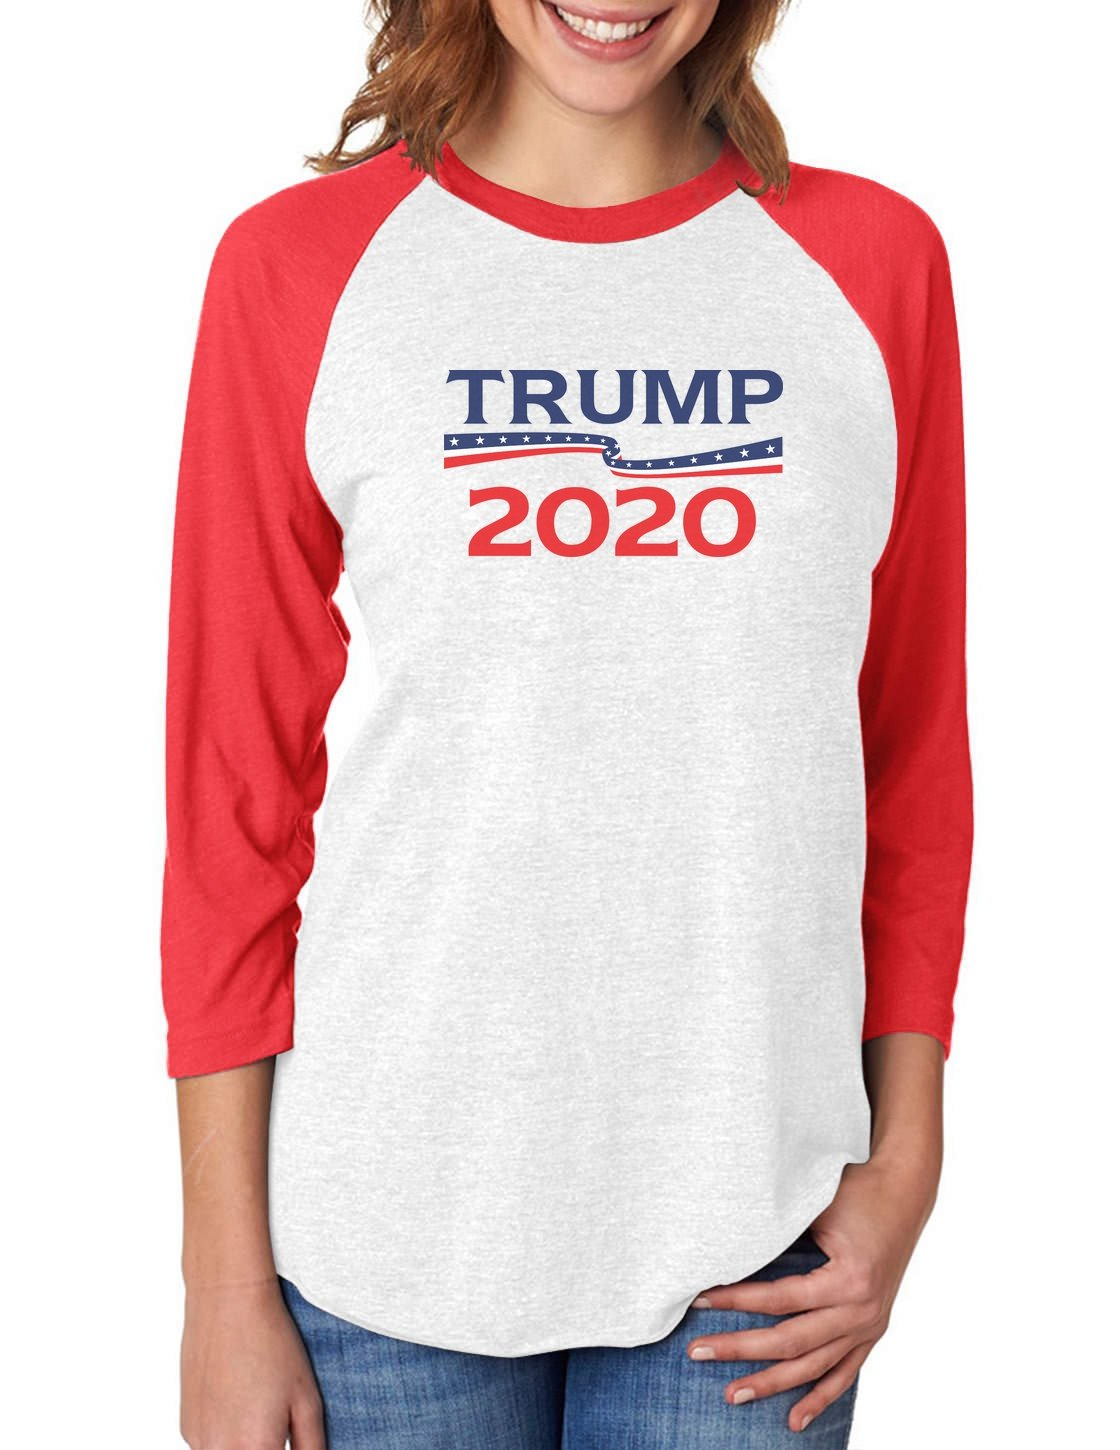 Donald Trump President 2020 Campaign 3/4 Women Sleeve Baseball Jersey Shirt